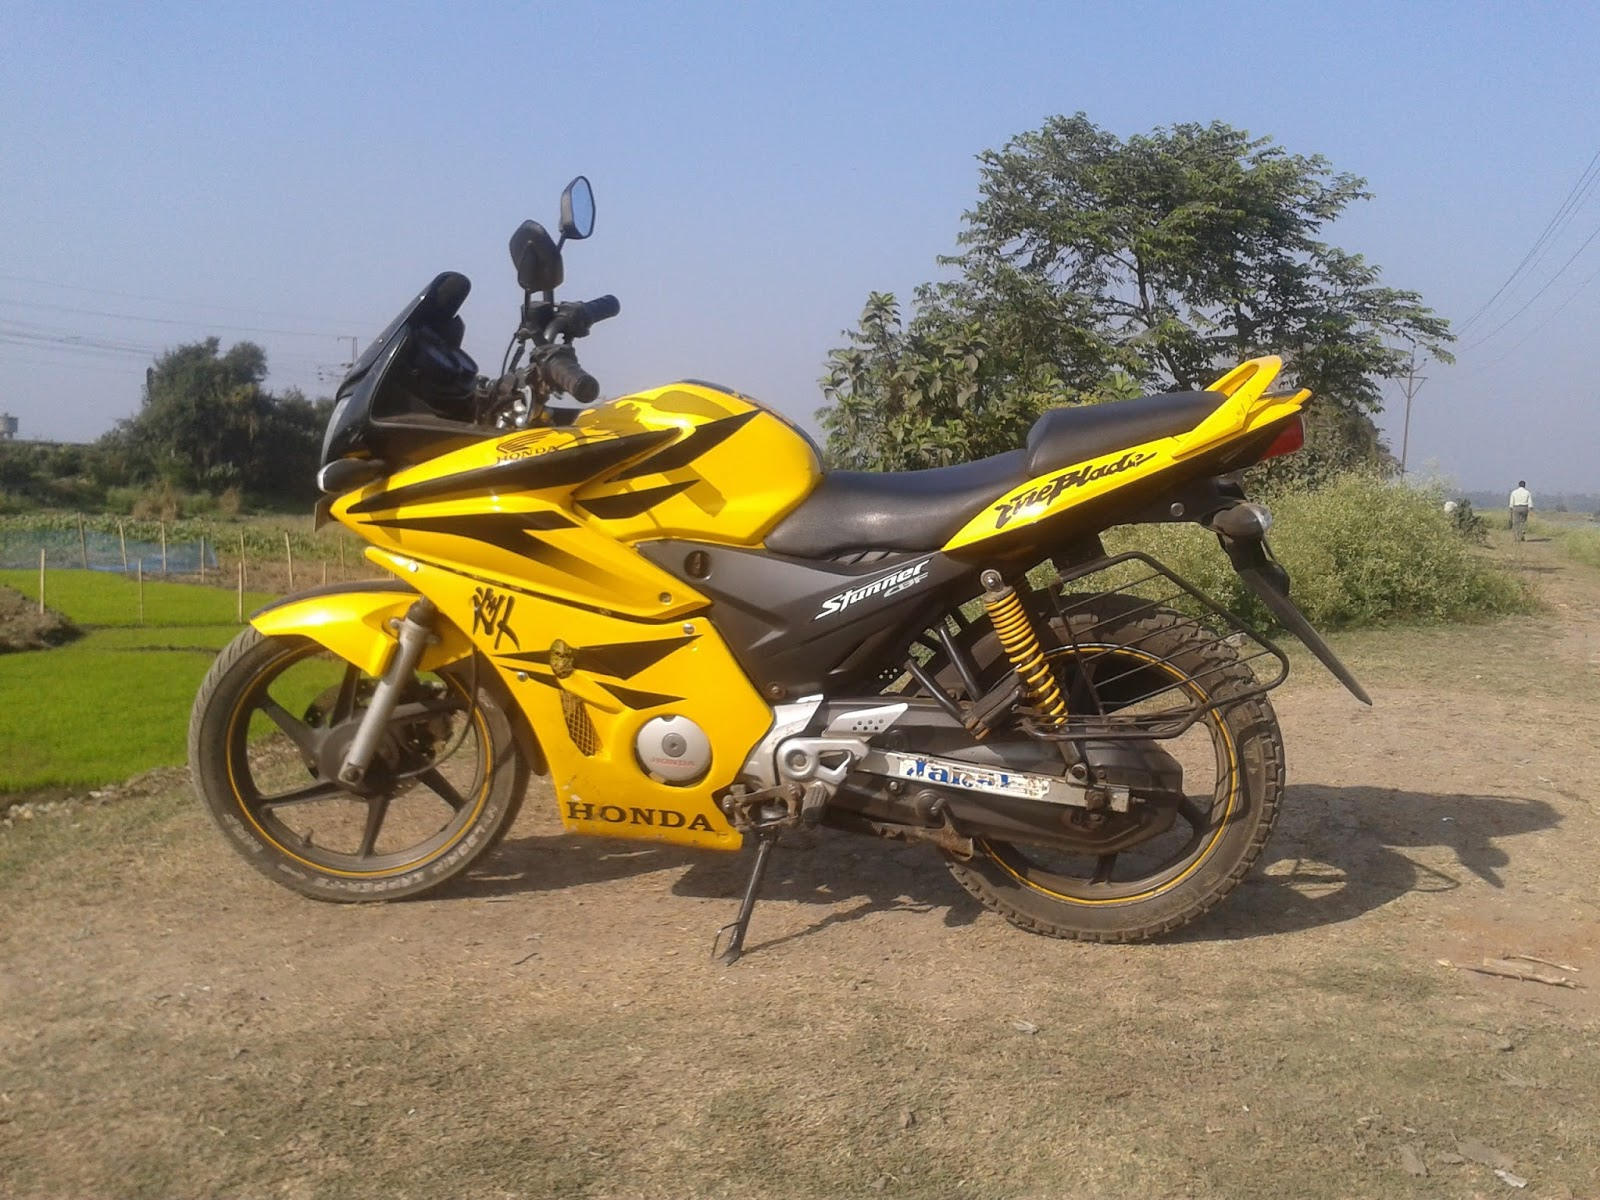 My modified yellow honda stunner cbf 125 kick start+self start with disc brakes 2009 model